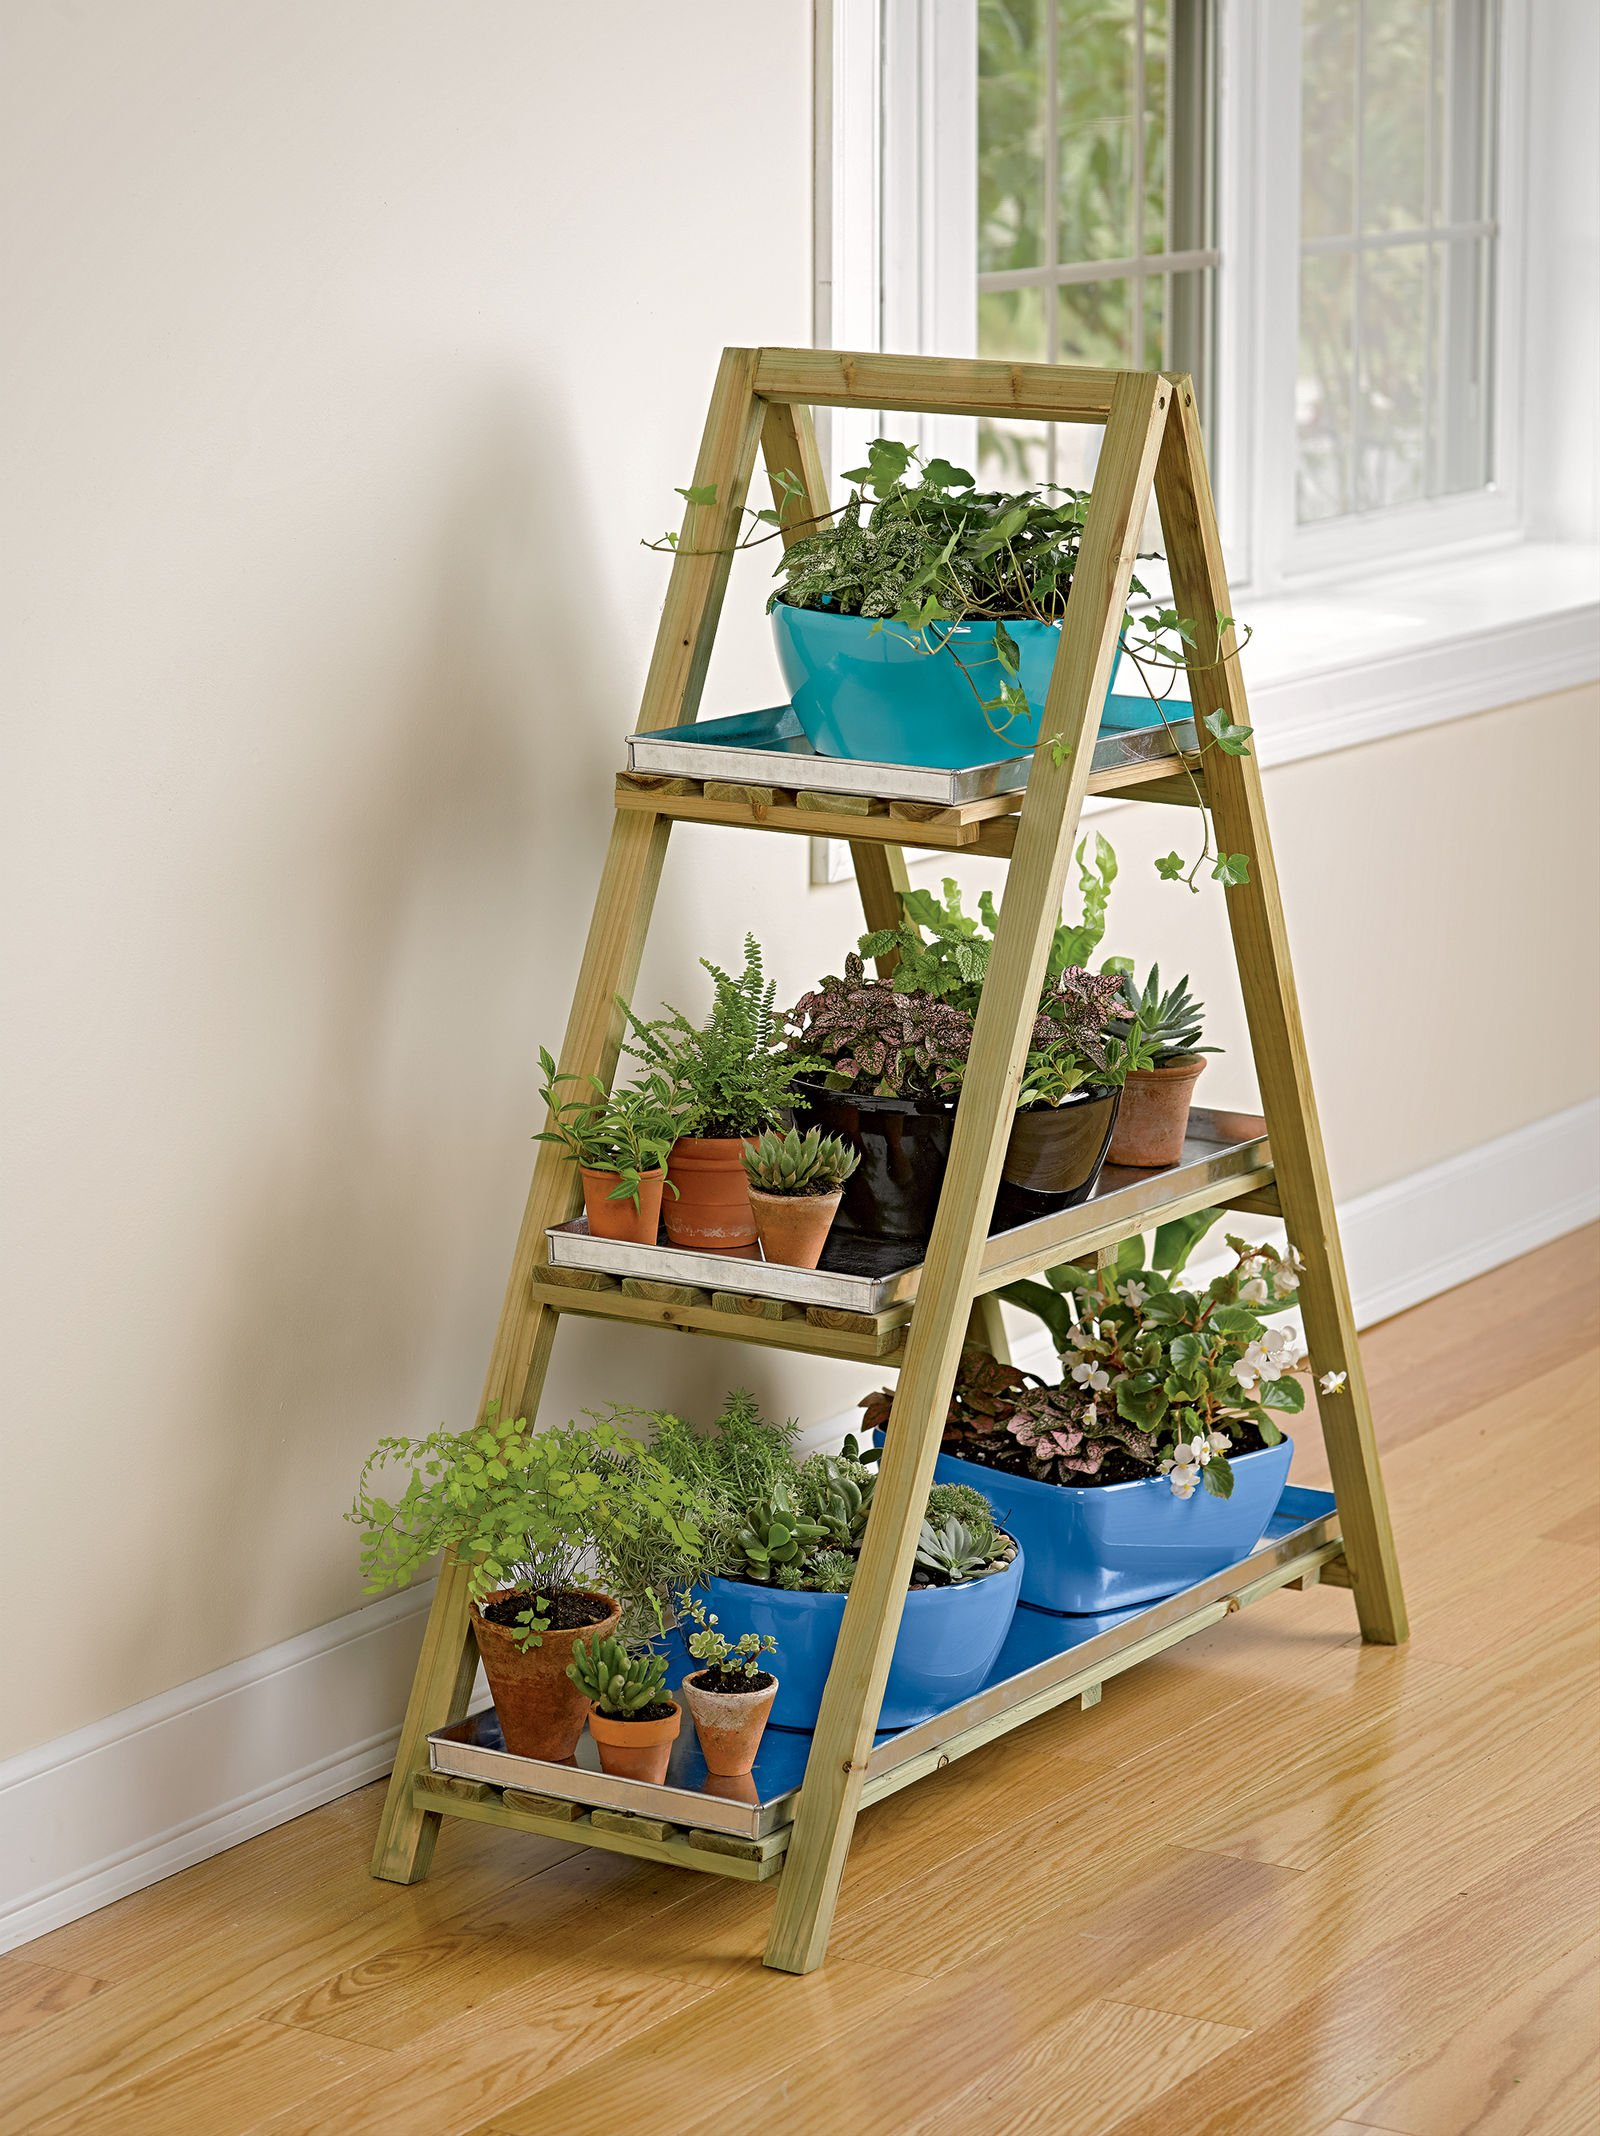 A-Frame Plant Stand & Tray Set